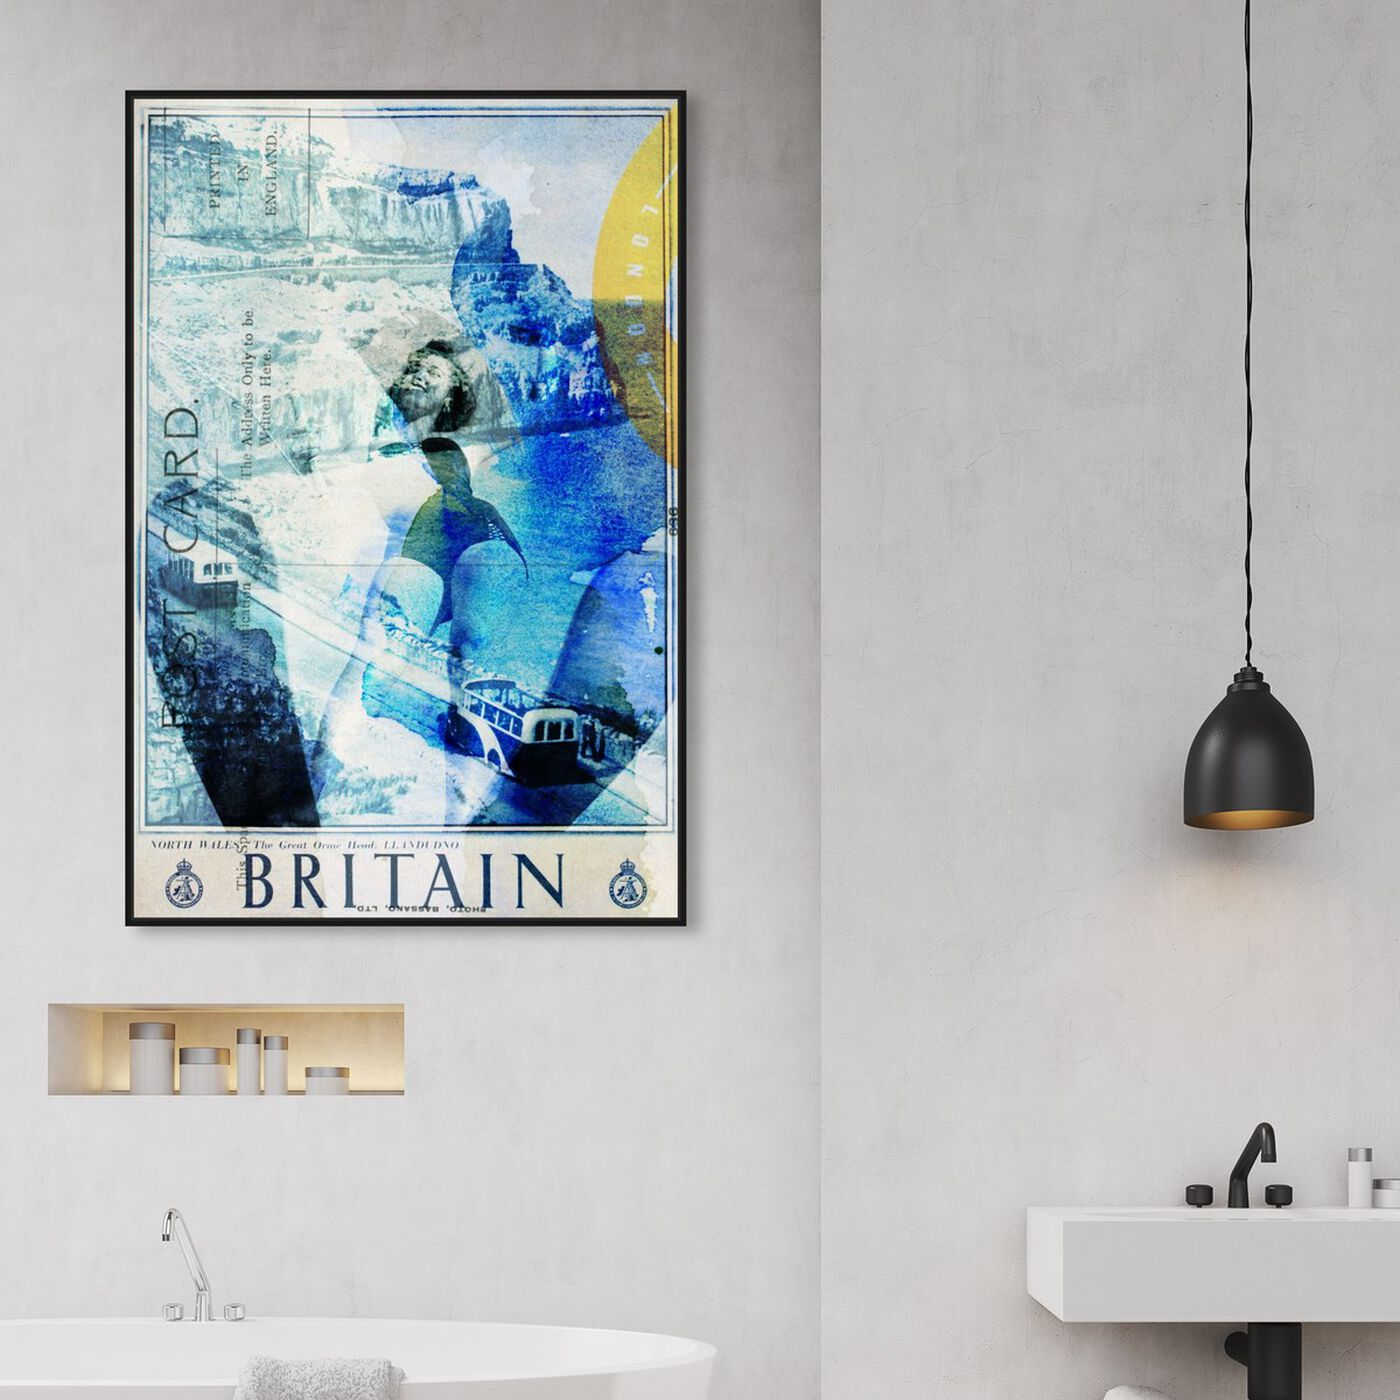 Hanging view of Britain featuring advertising and posters art.